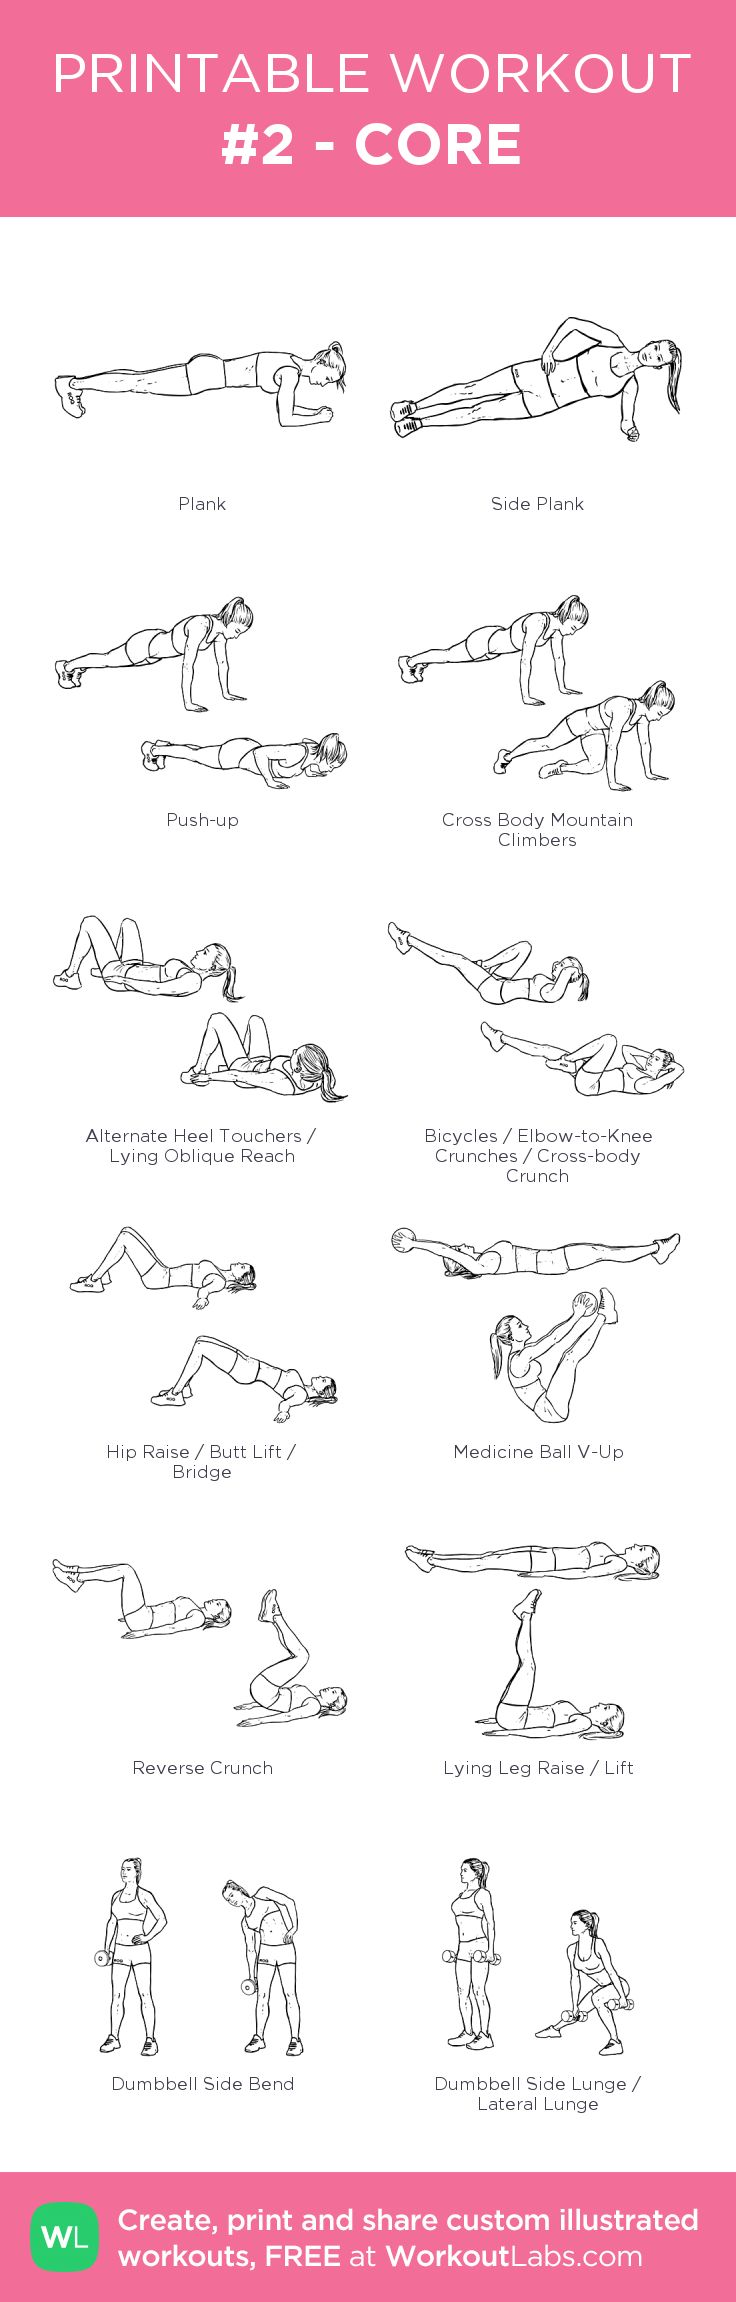 #2 - CORE:my visual workout created at WorkoutLabs.com • Click through to customize and download as a FREE PDF! #customworkout